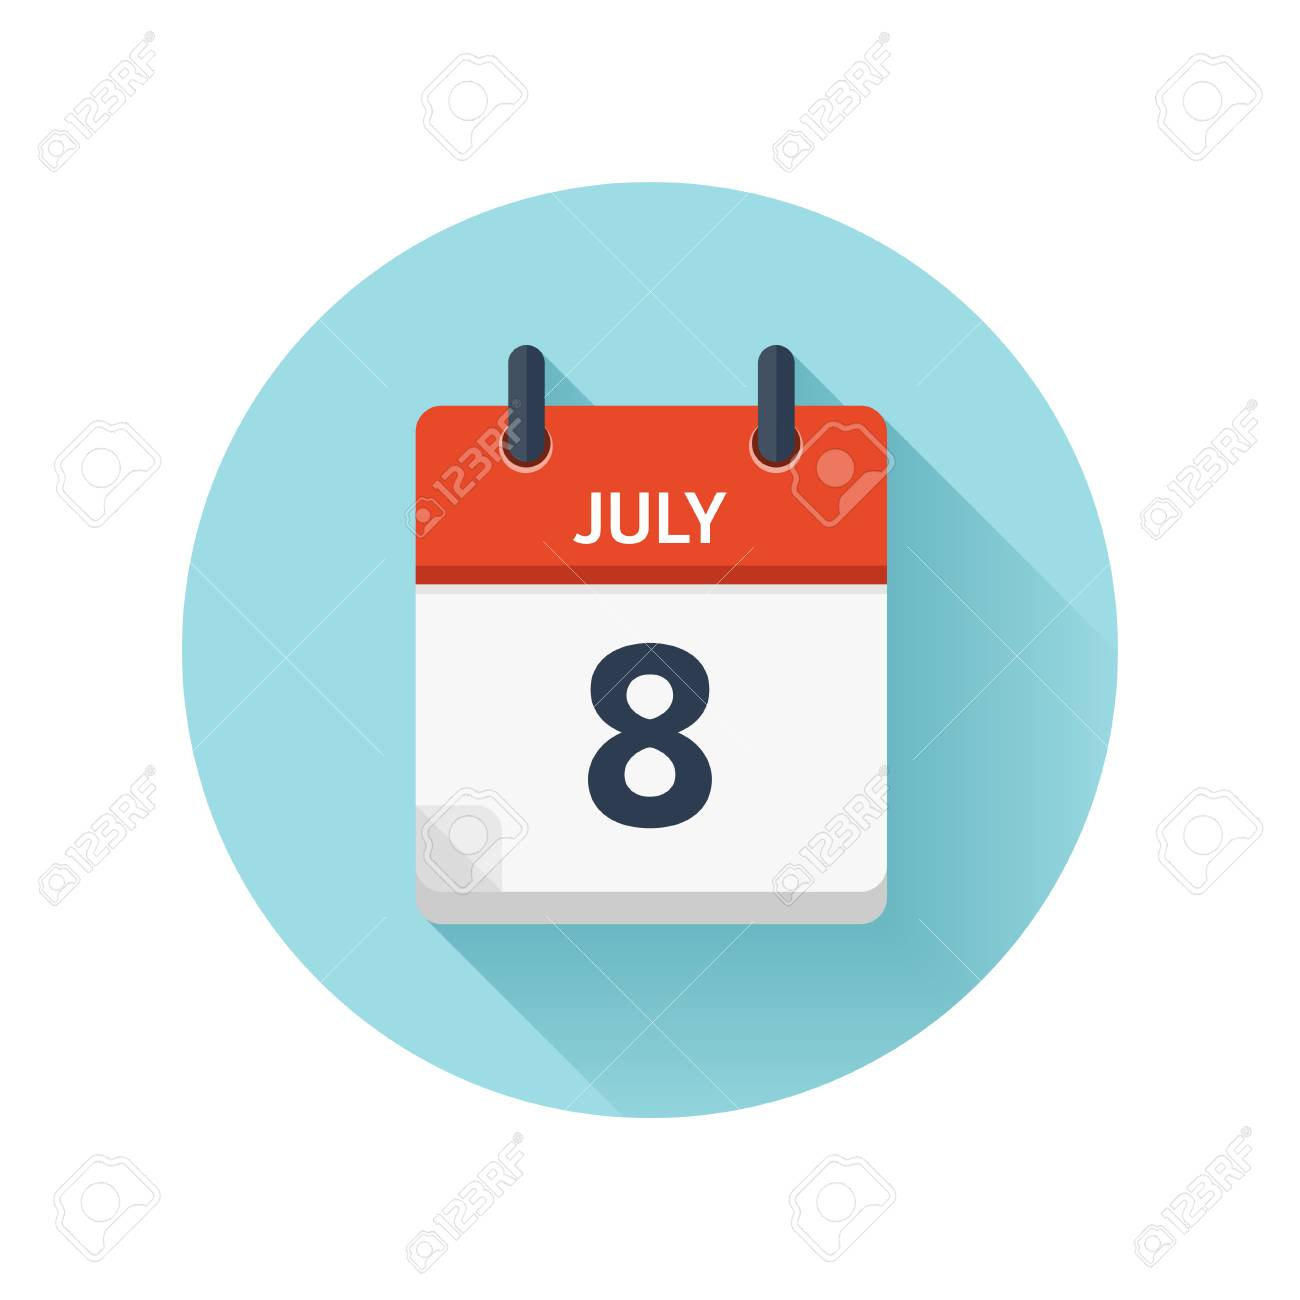 Daily Holiday Calendar.July 8 Vector Flat Daily Calendar Icon Date And Time Day